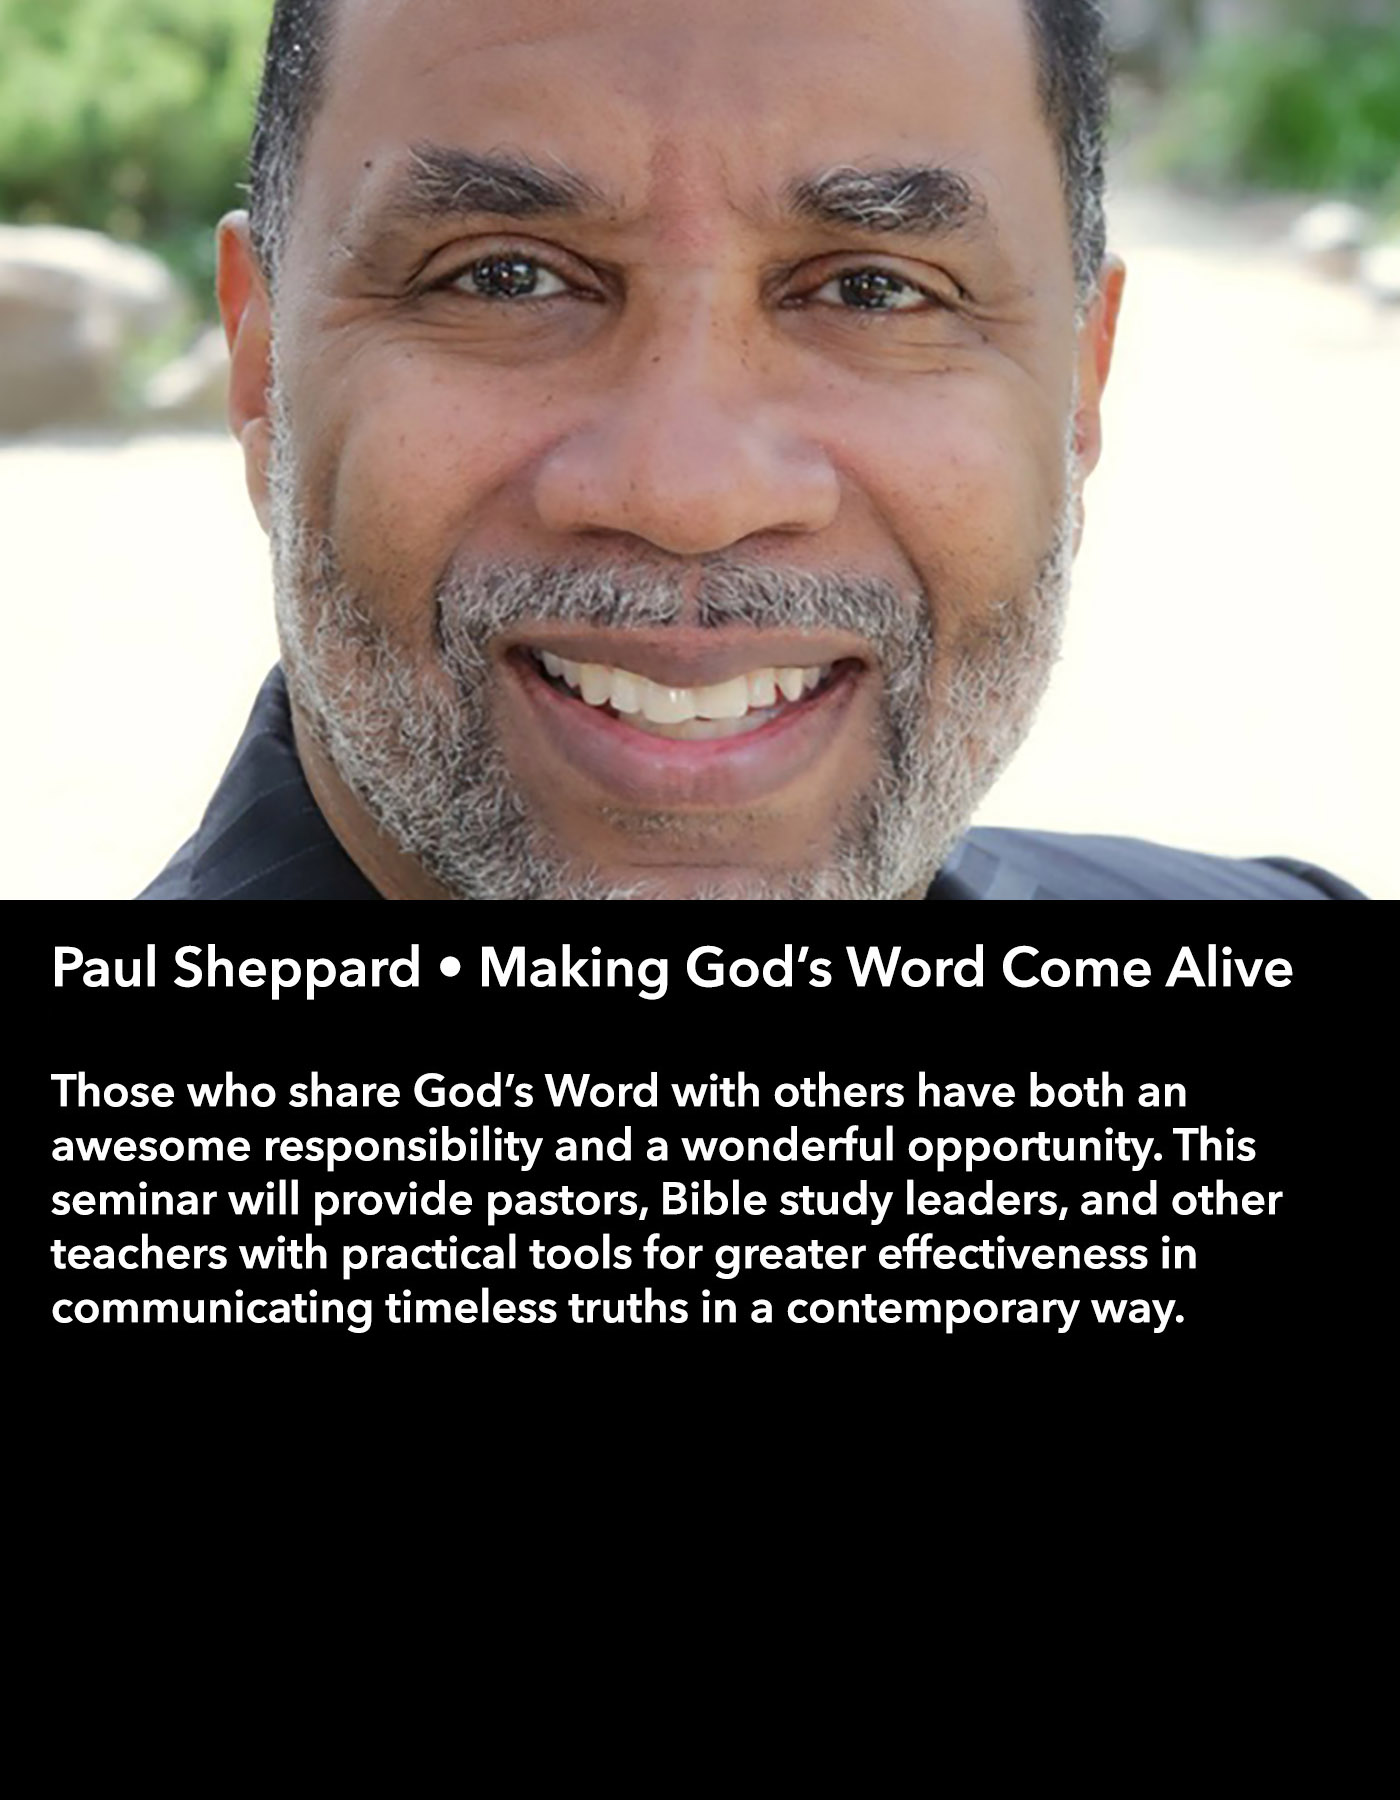 Paul Sheppard • Making God's Word Come Alive • Saturday Morning, March 18 • 10:30 – 11:45 am